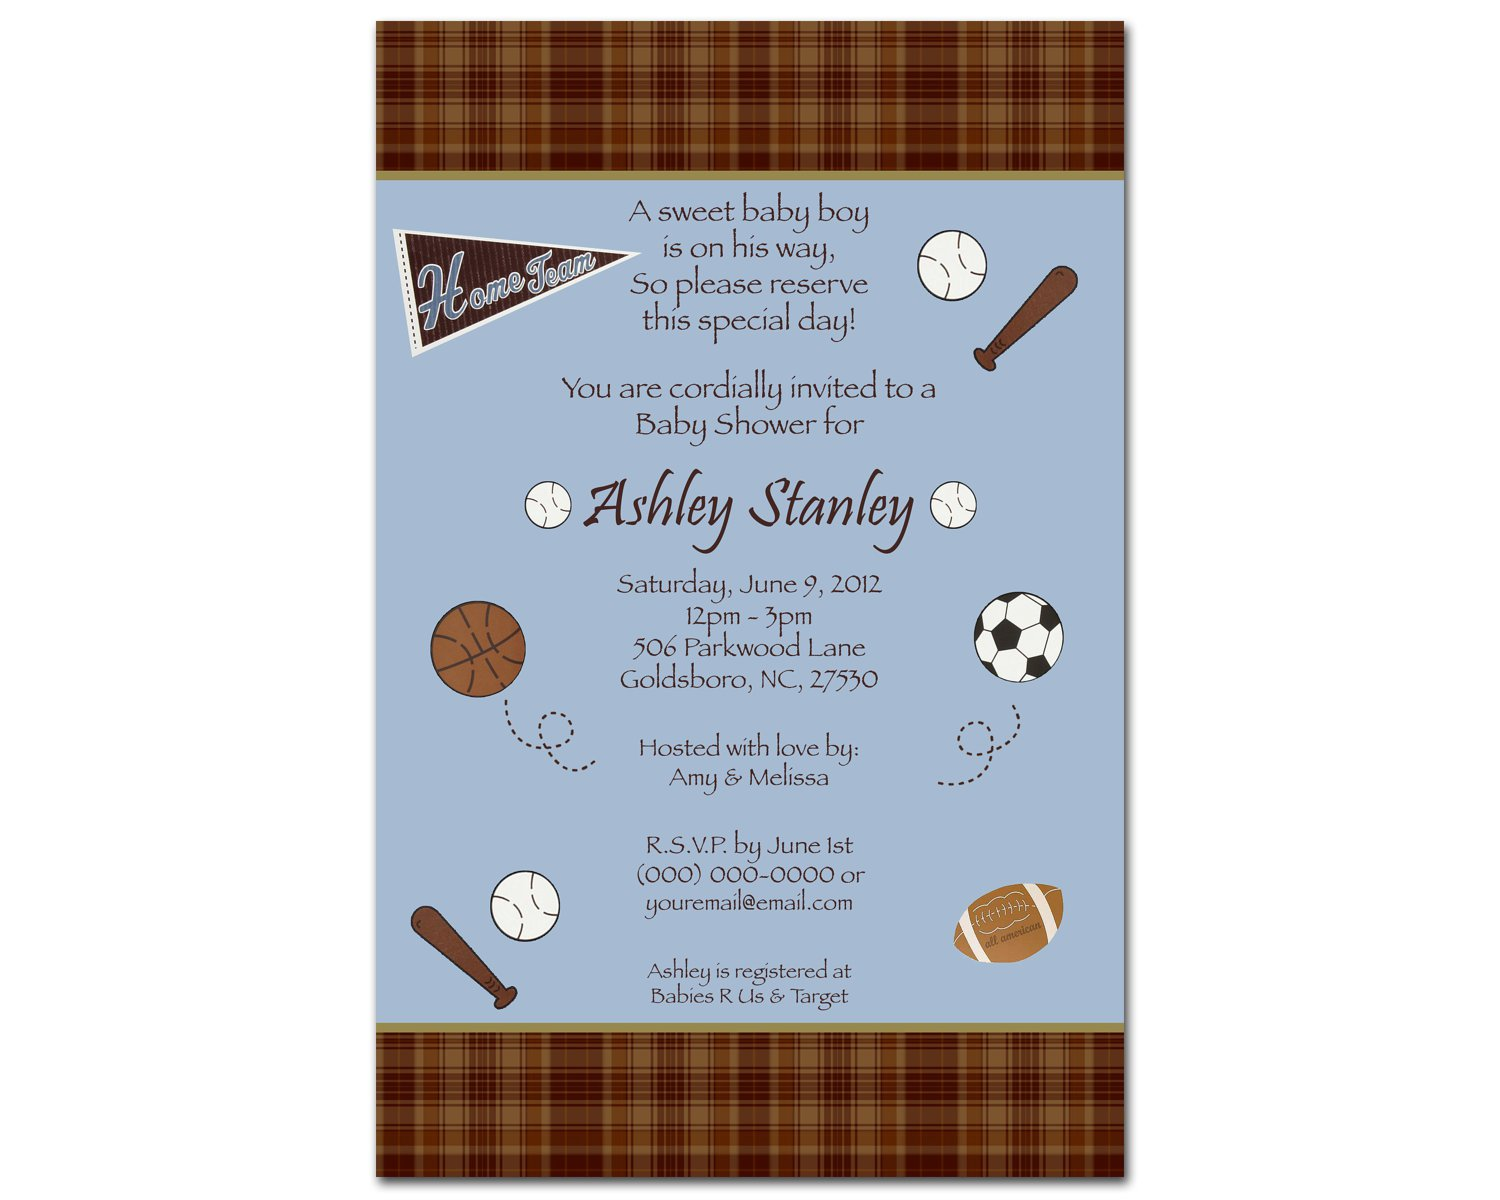 Baby Shower Invitation At Party City